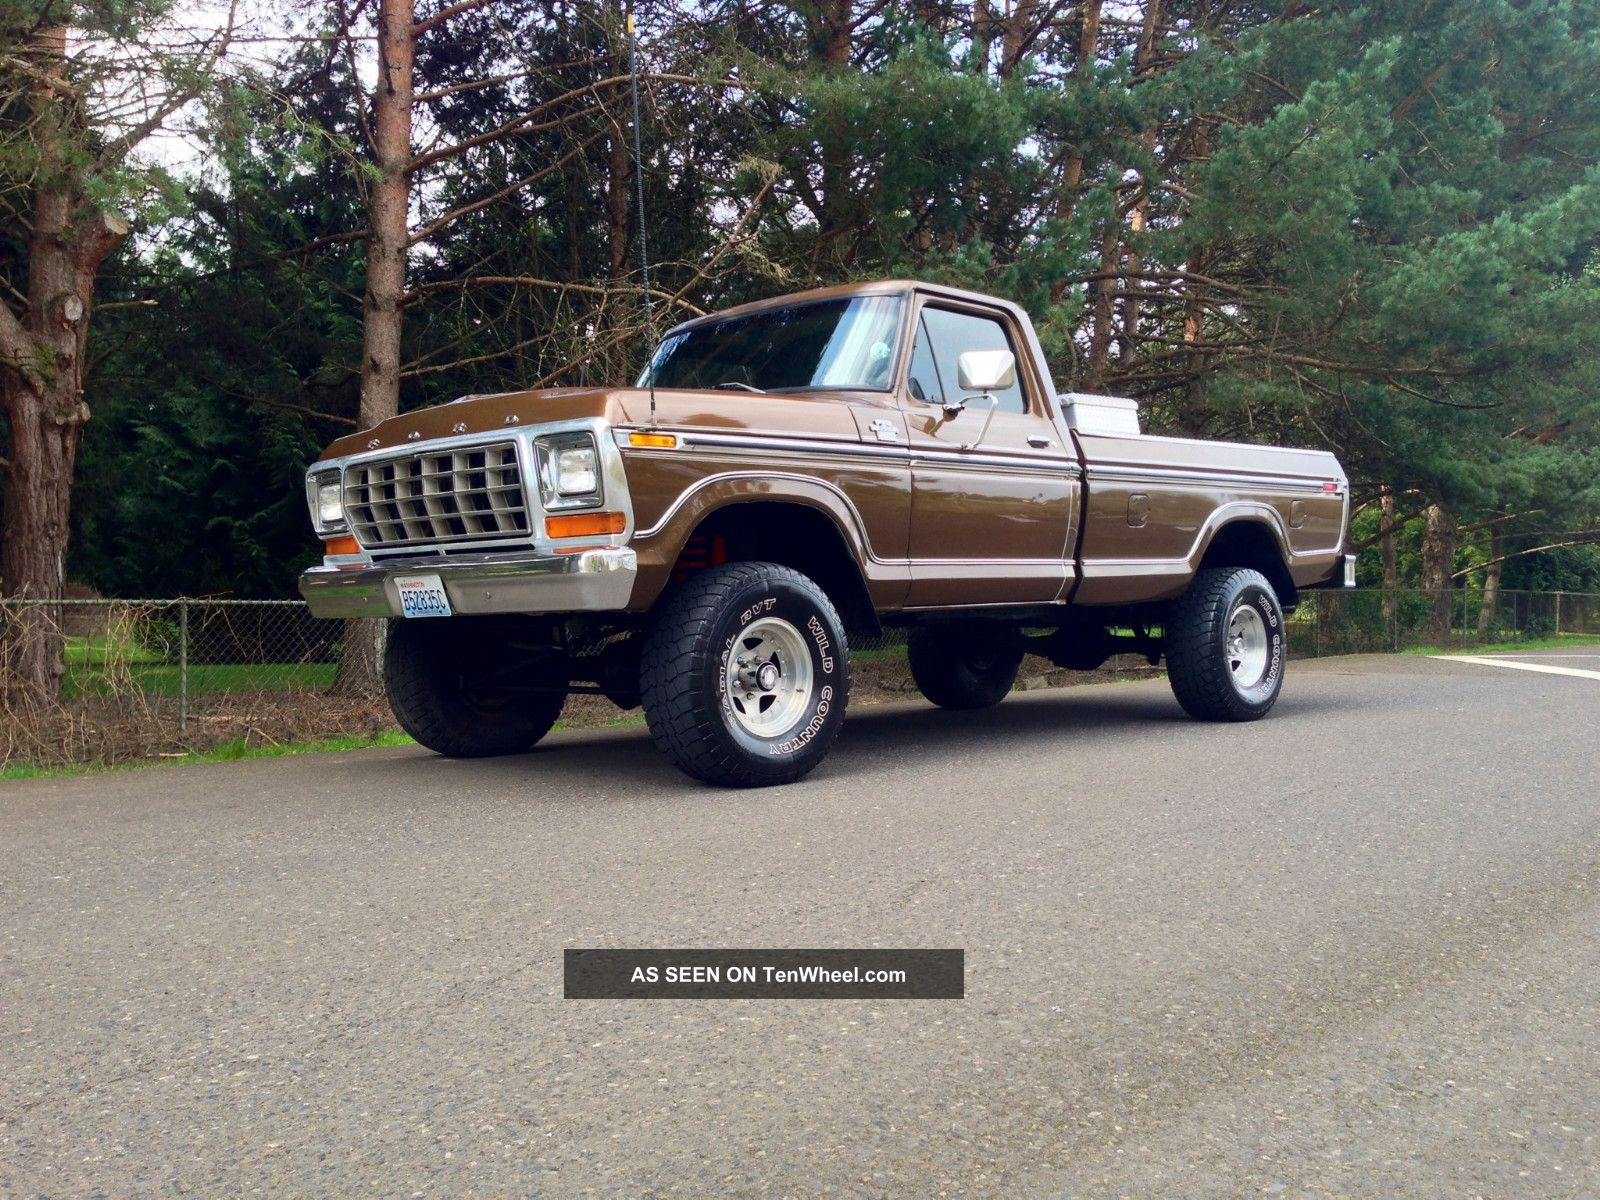 1979 Ford F150 4x4 Longbed Ranger Lariat Xlt Factory Ac 1978 1977 1976 1975 F-150 photo